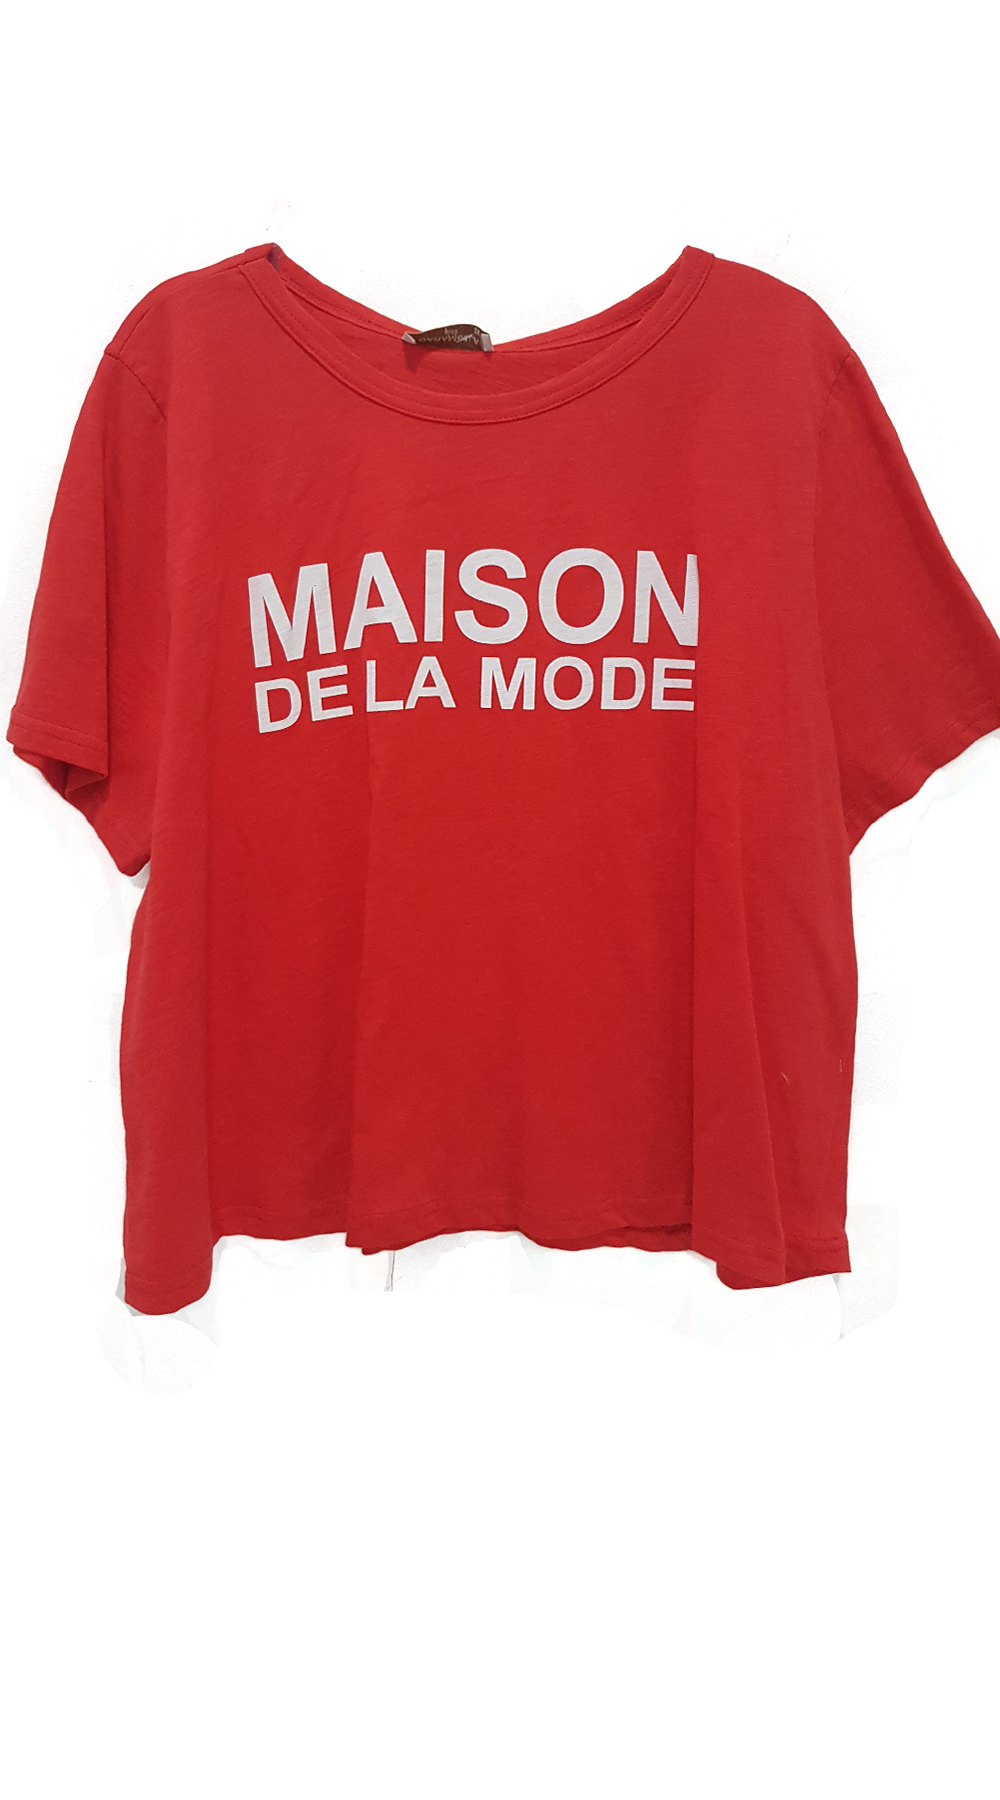 Γυναικείο t-shirt MAISON DE LA MODE - Curvy - Greek Brands - SP18CM-C-15004 curvy plus μπλούζες   πουκάμισα